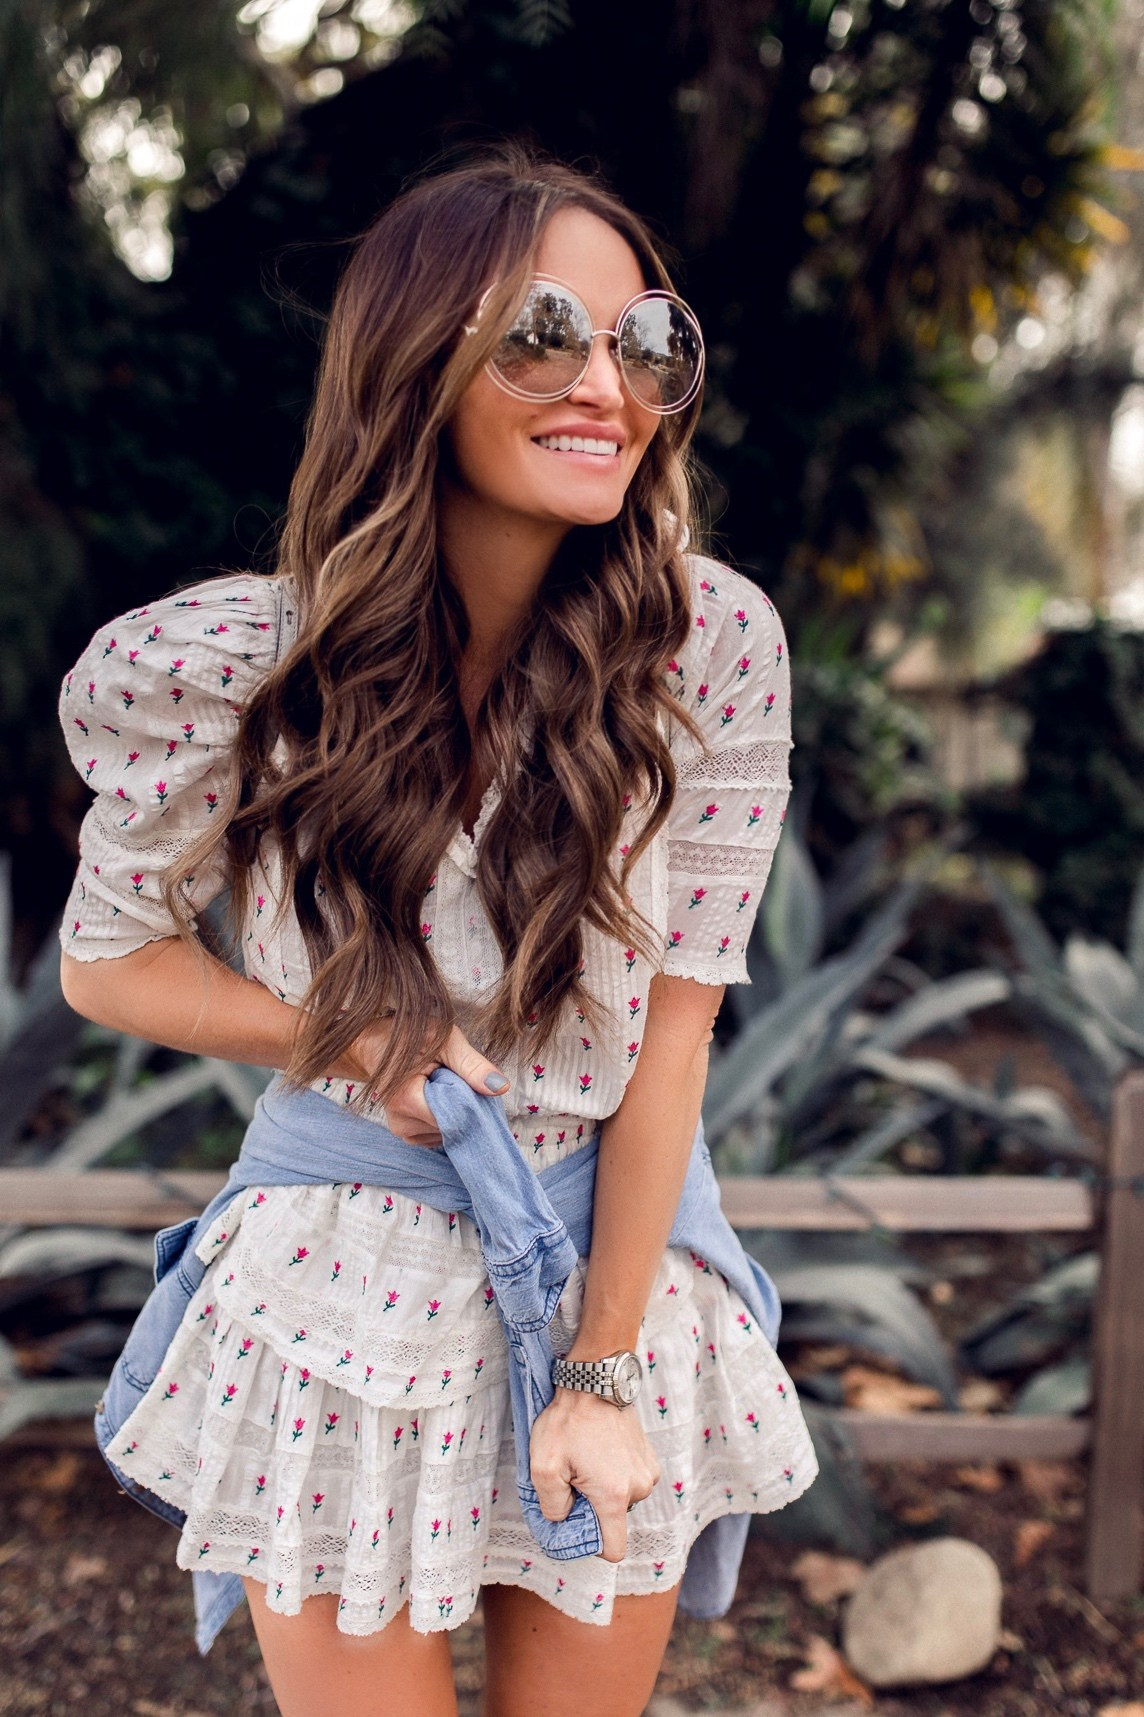 #DKW-Fashion - Spring Is In the Hair